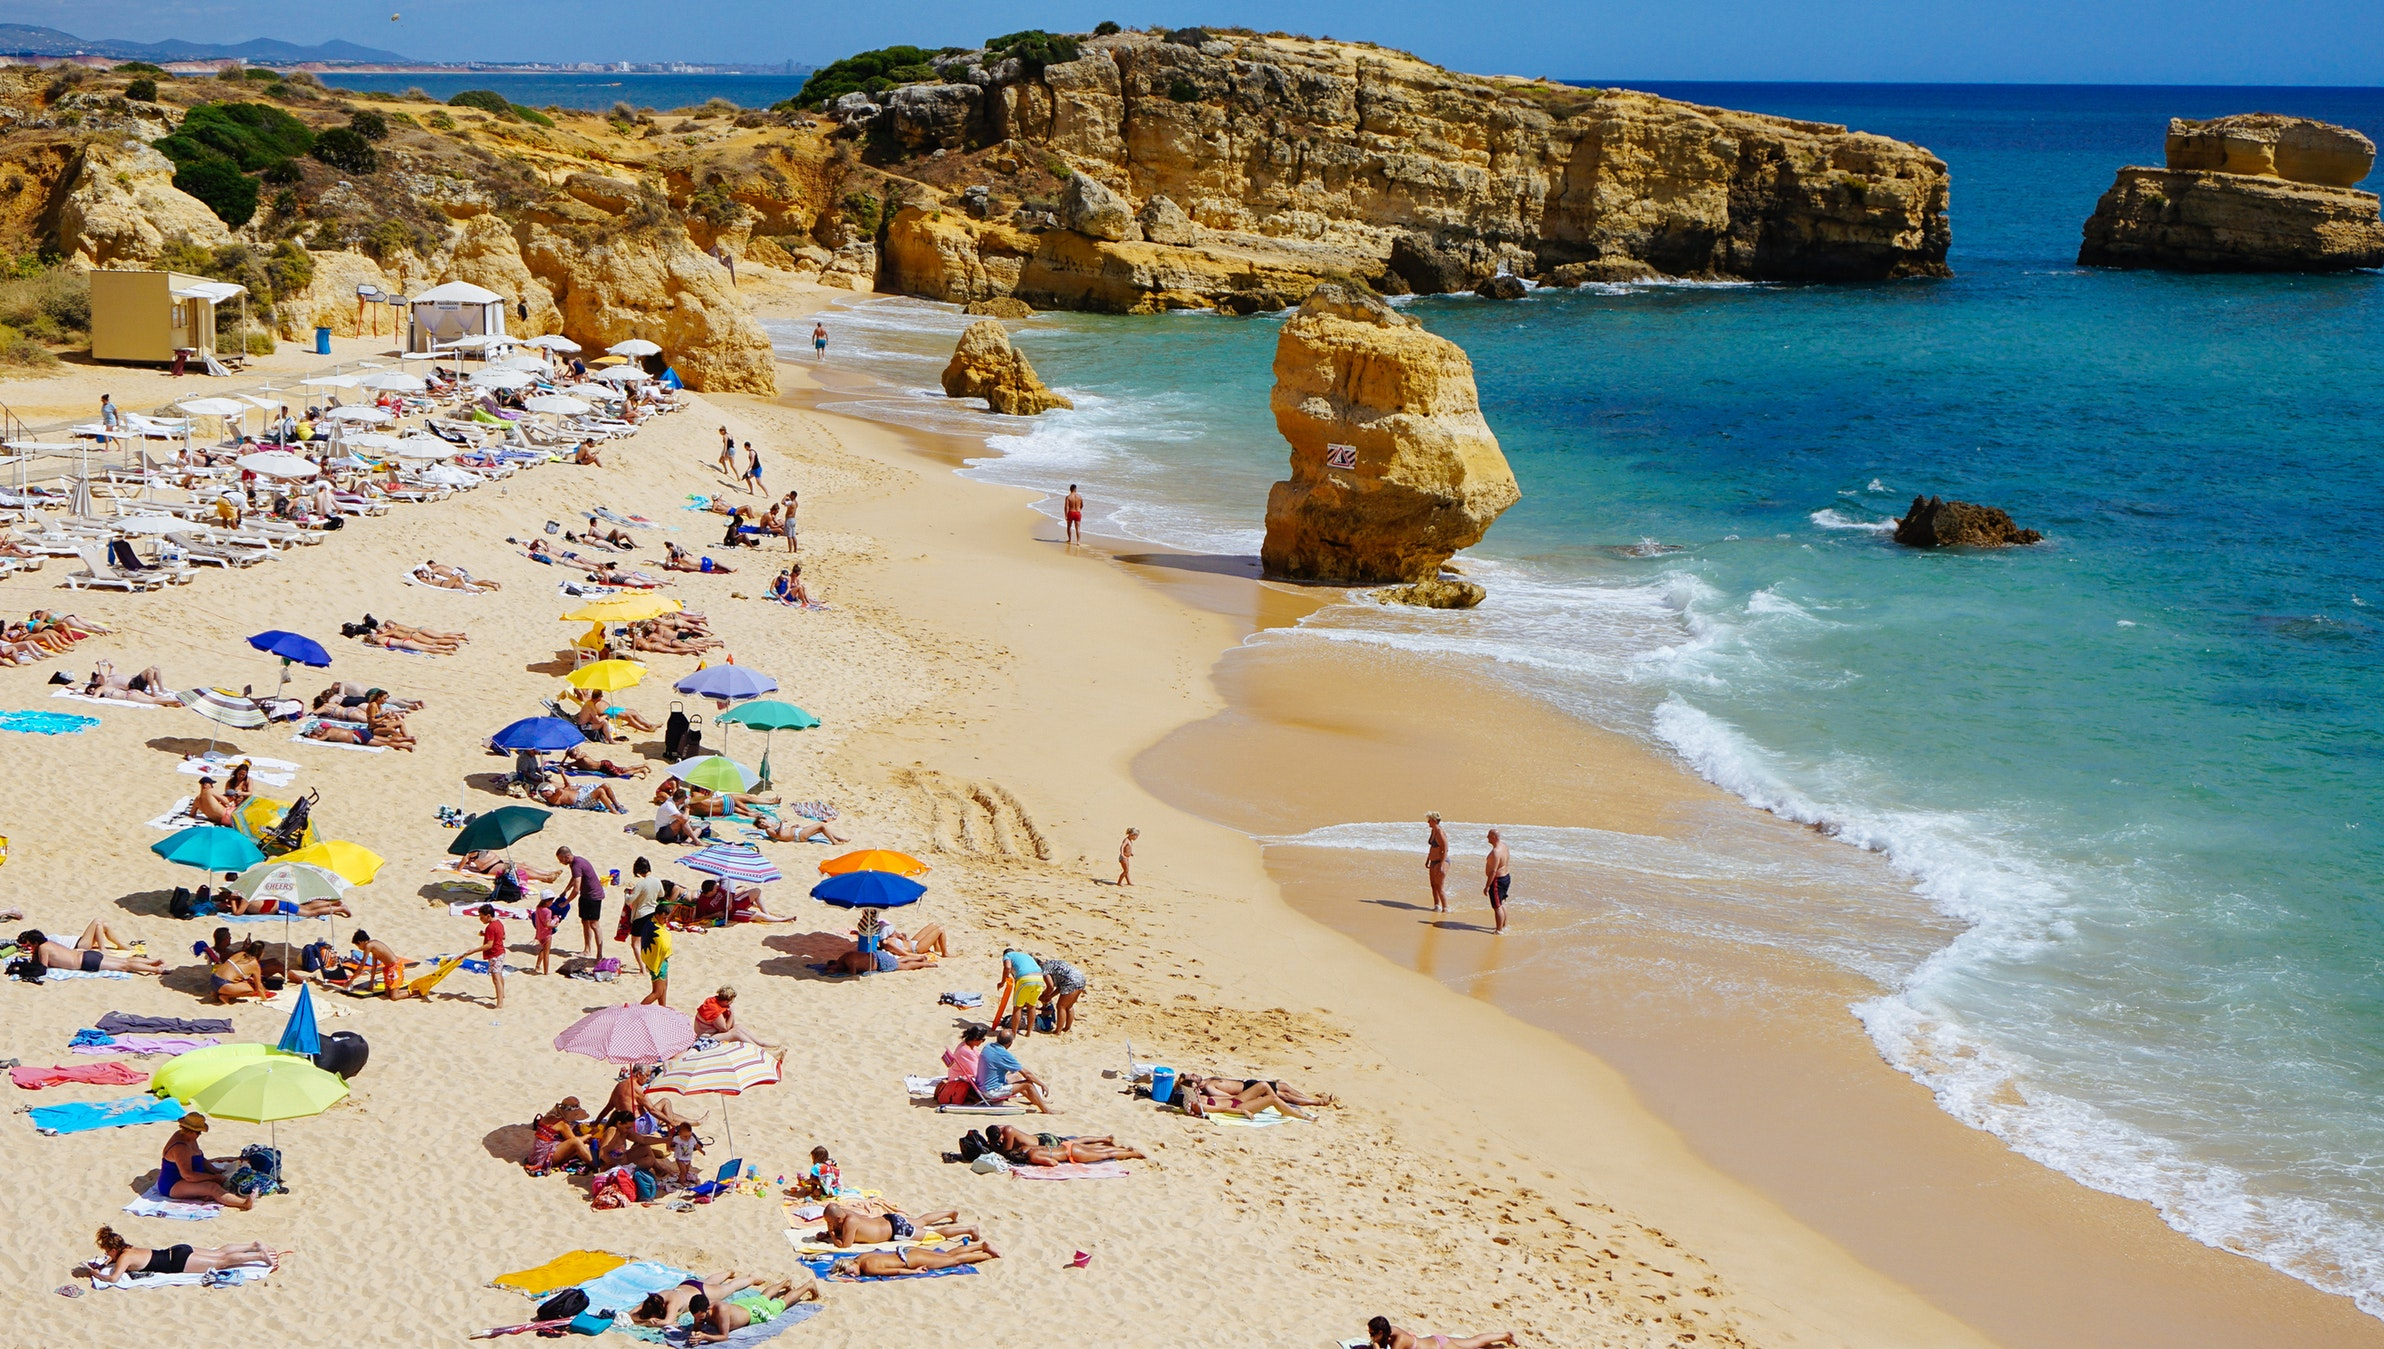 9 Seaside Destinations In Algarve To Add To Your Bucket List // Summer Destinations // WarmRental